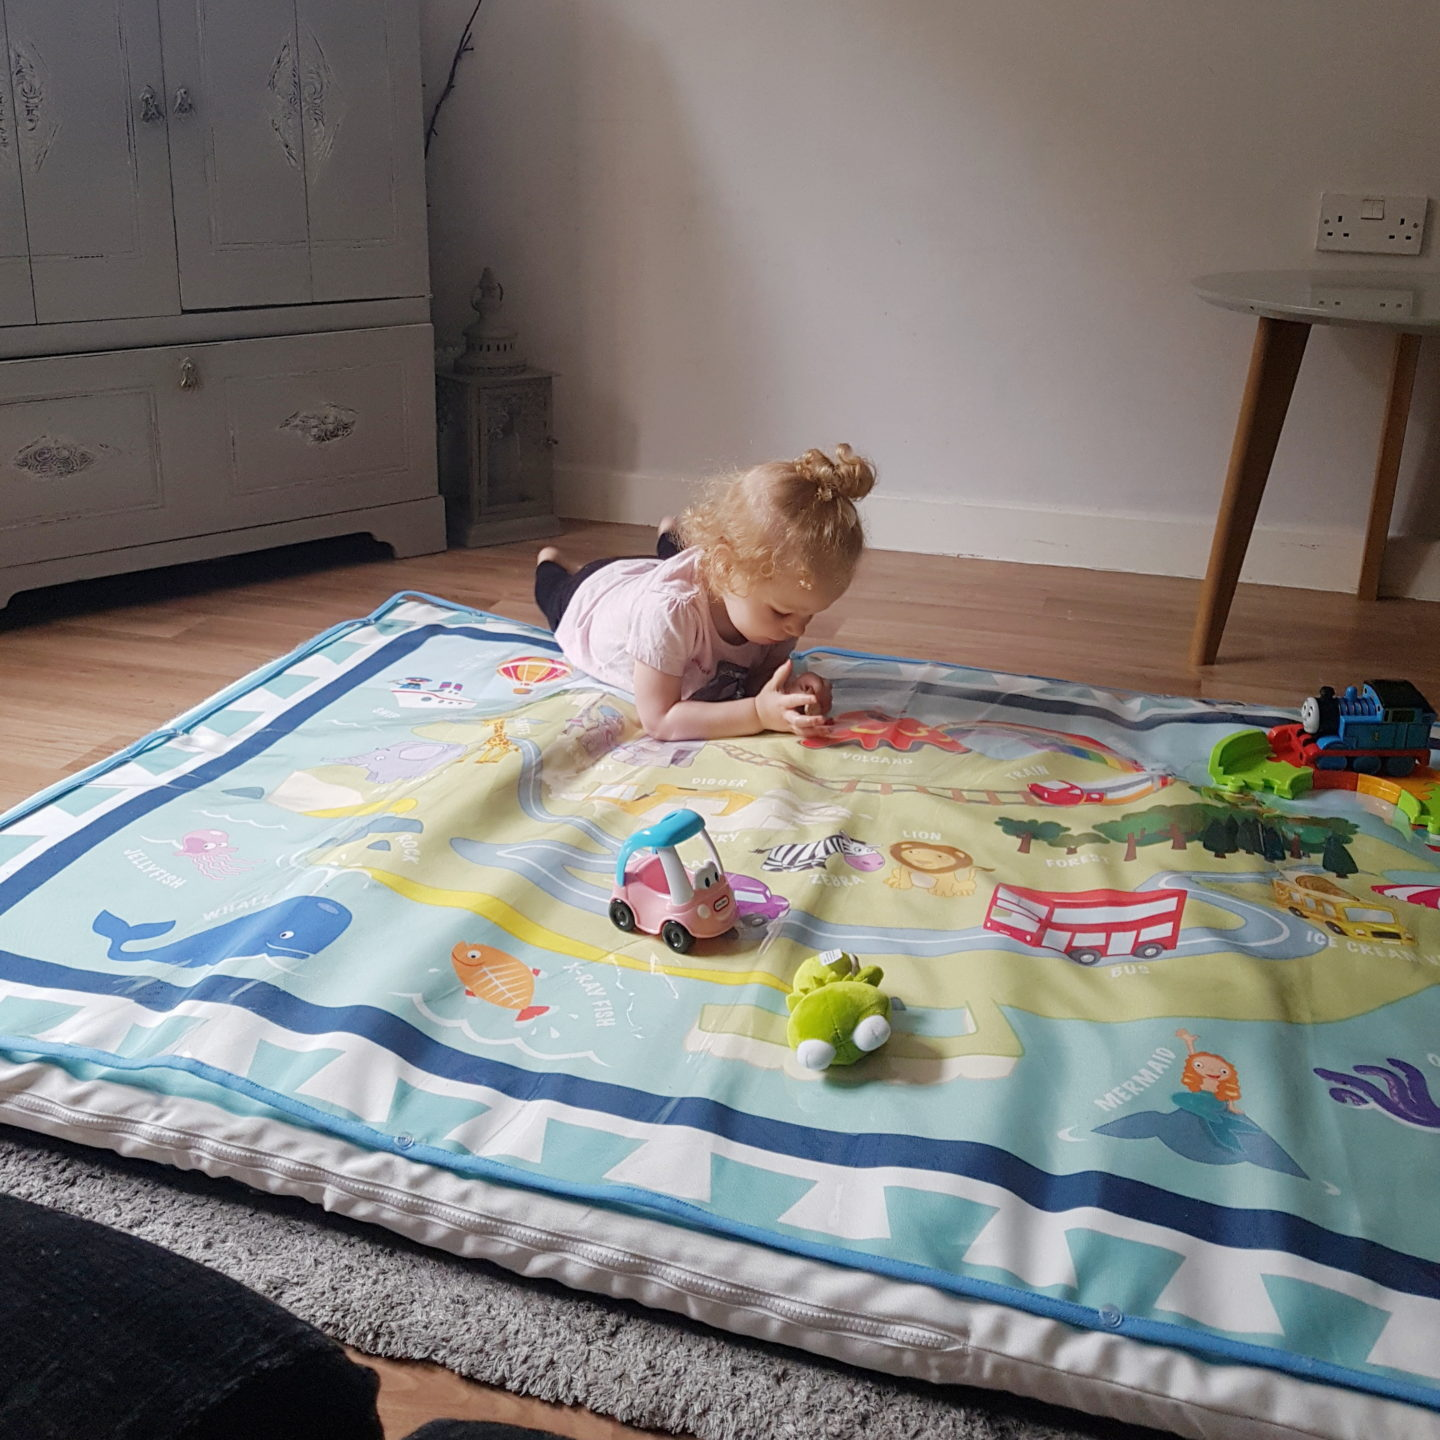 First Impressions on the JayceeBaby Playmat